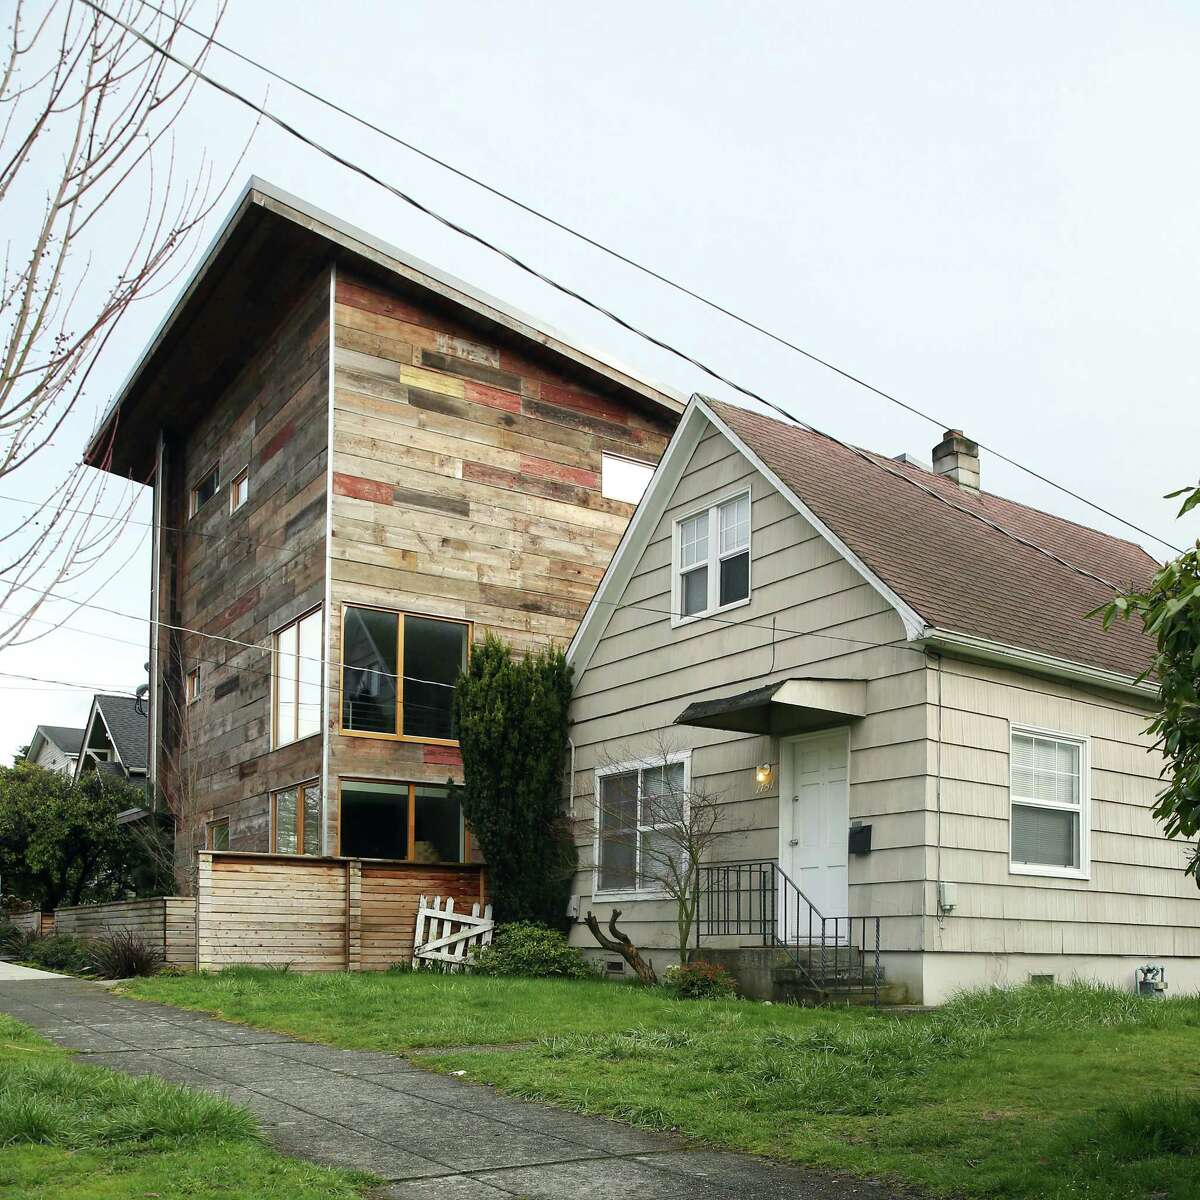 Seattle's changing a lot these days (pictured above: A two-bedroom house built in 1900 next to a modern three-bedroom built in 2015 on NW 61st Street in Ballard). But the quintessential